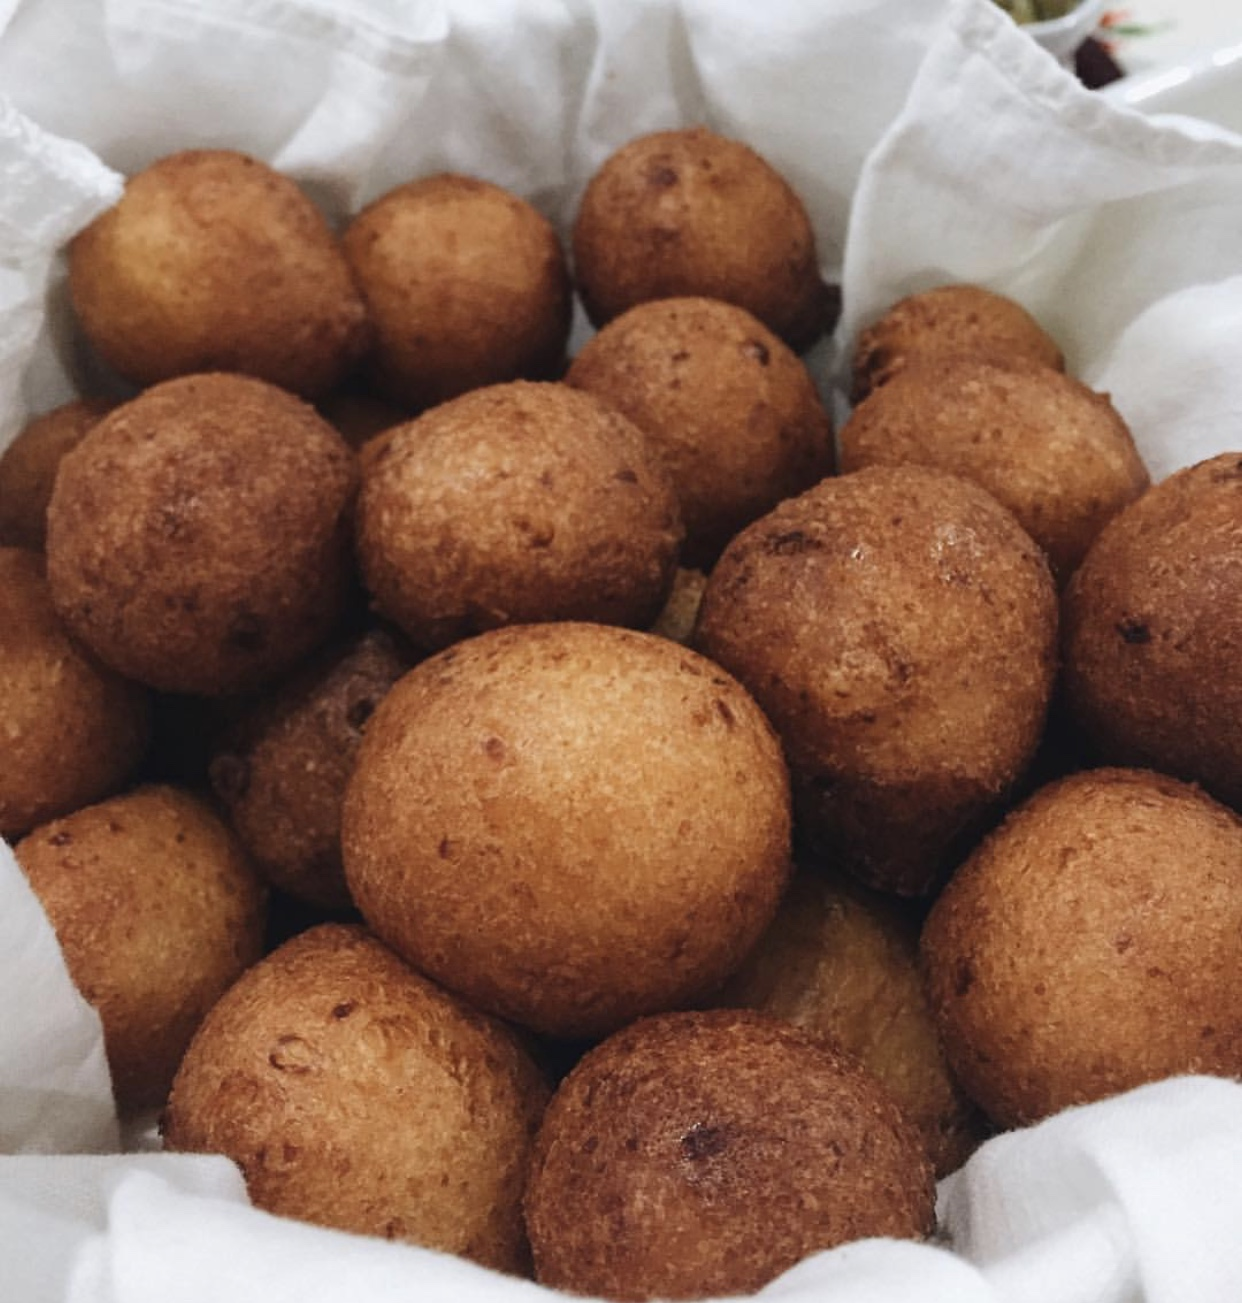 Buñuelos, delicious fried pastries popular in Latin America. Photo credit: Sophie Echeverry